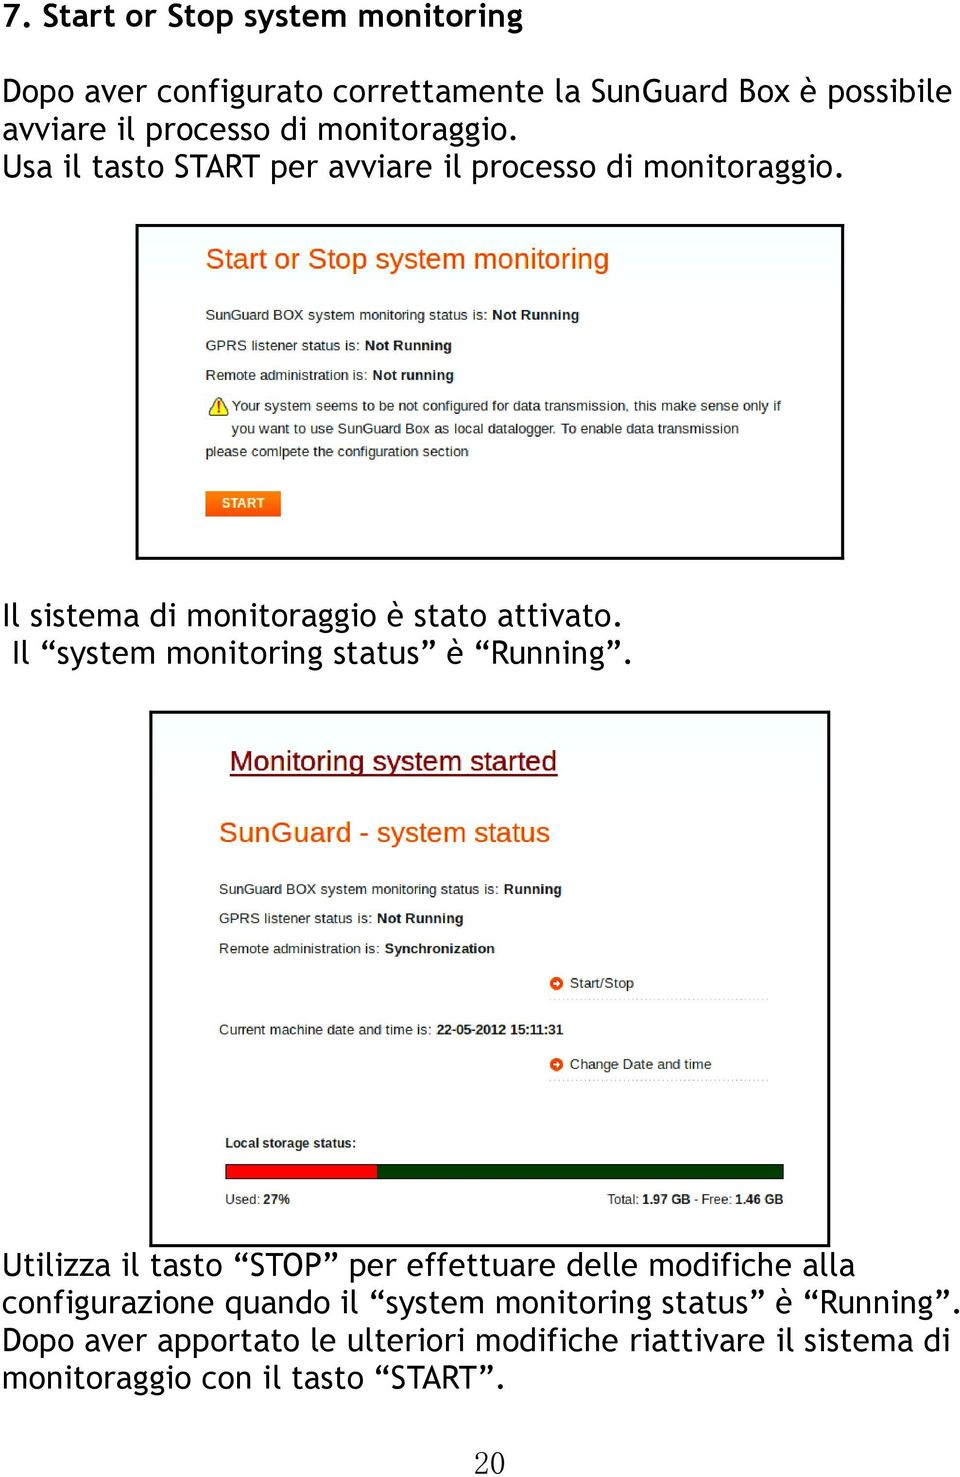 Il system monitoring status è Running.